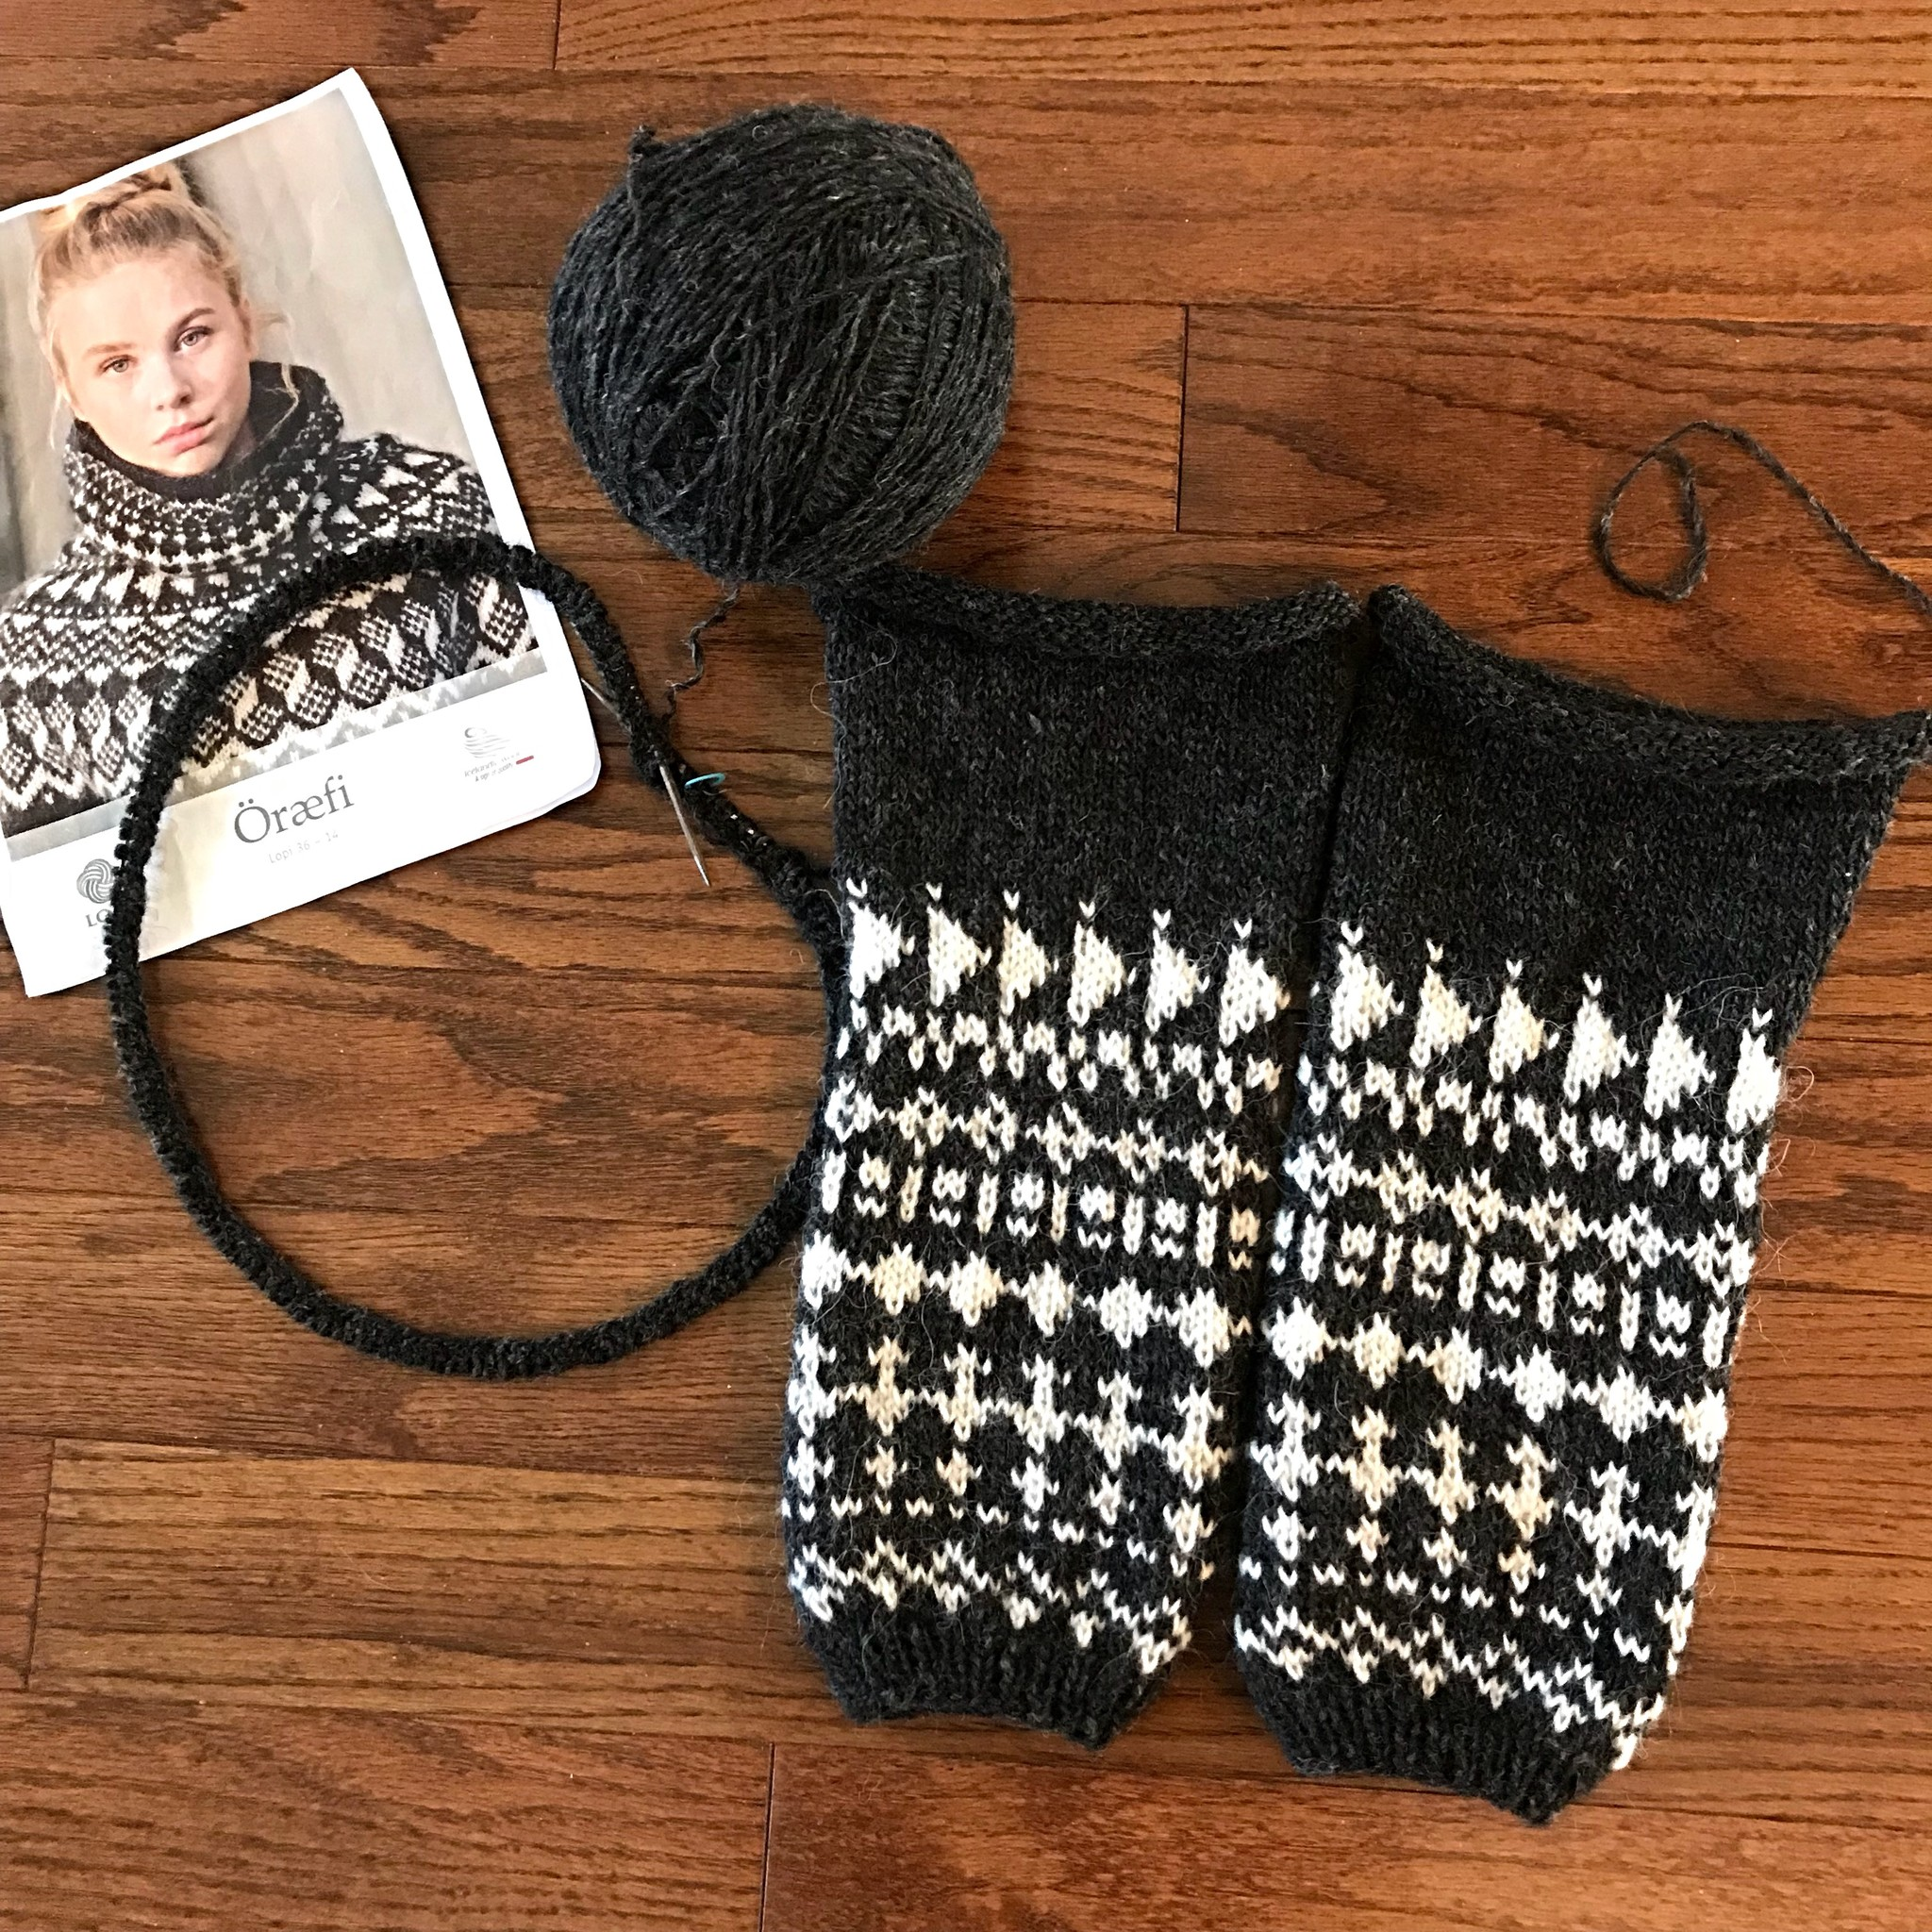 Sue2Knits Oraefi WIP-Oct 27